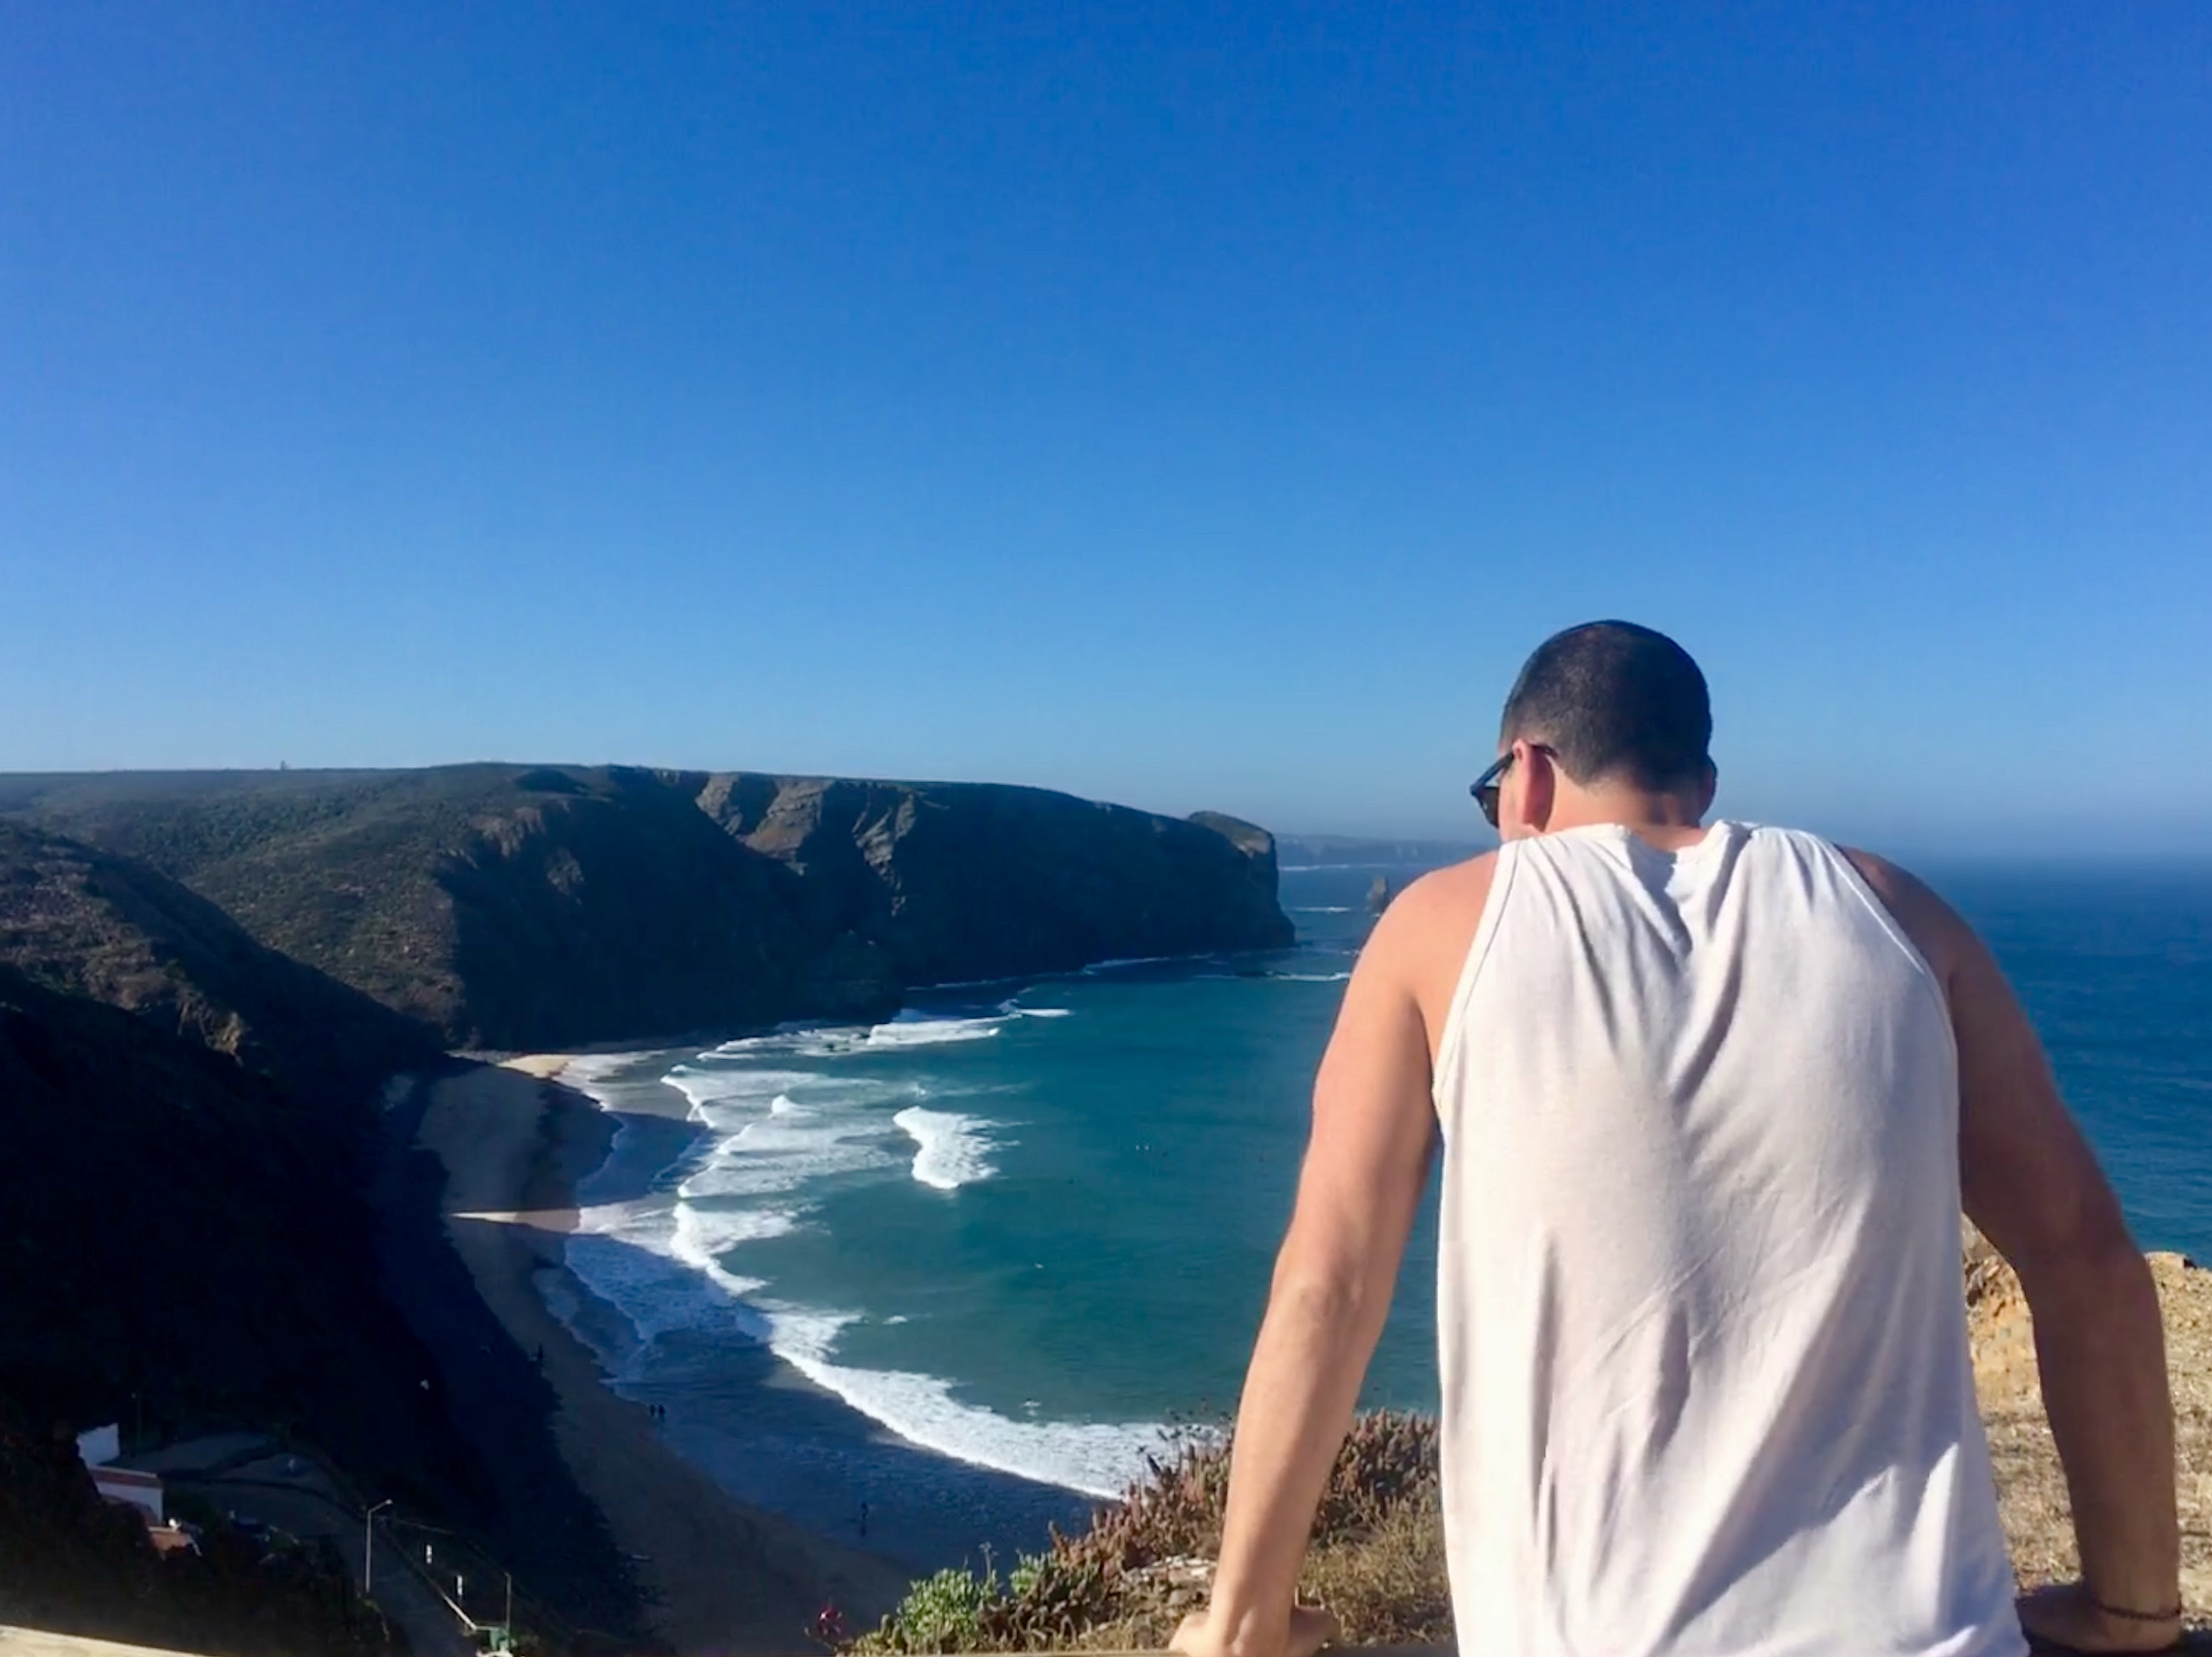 my american friend totally blown away by the view of the surf at arrifana